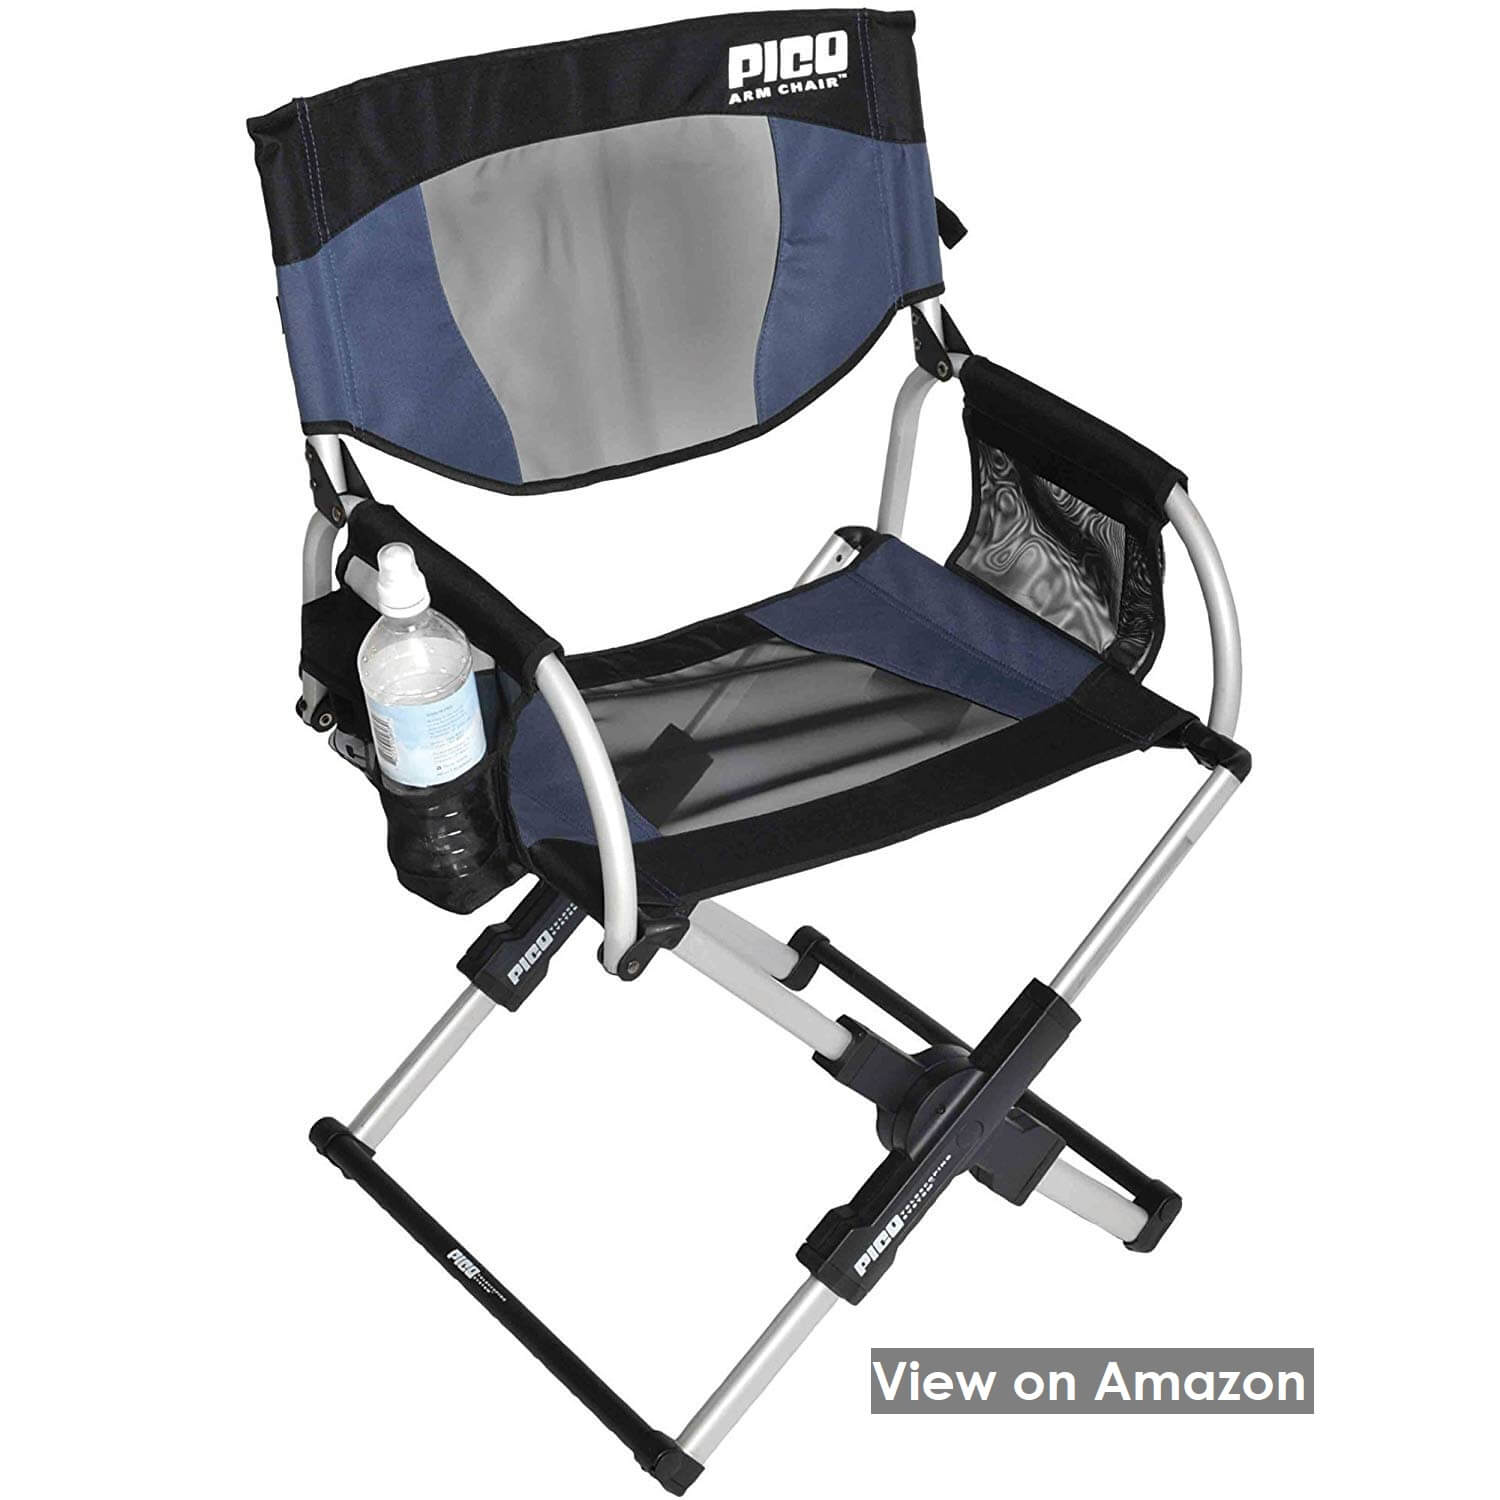 GCI Outdoor Pico Compact Folding Camp Chair